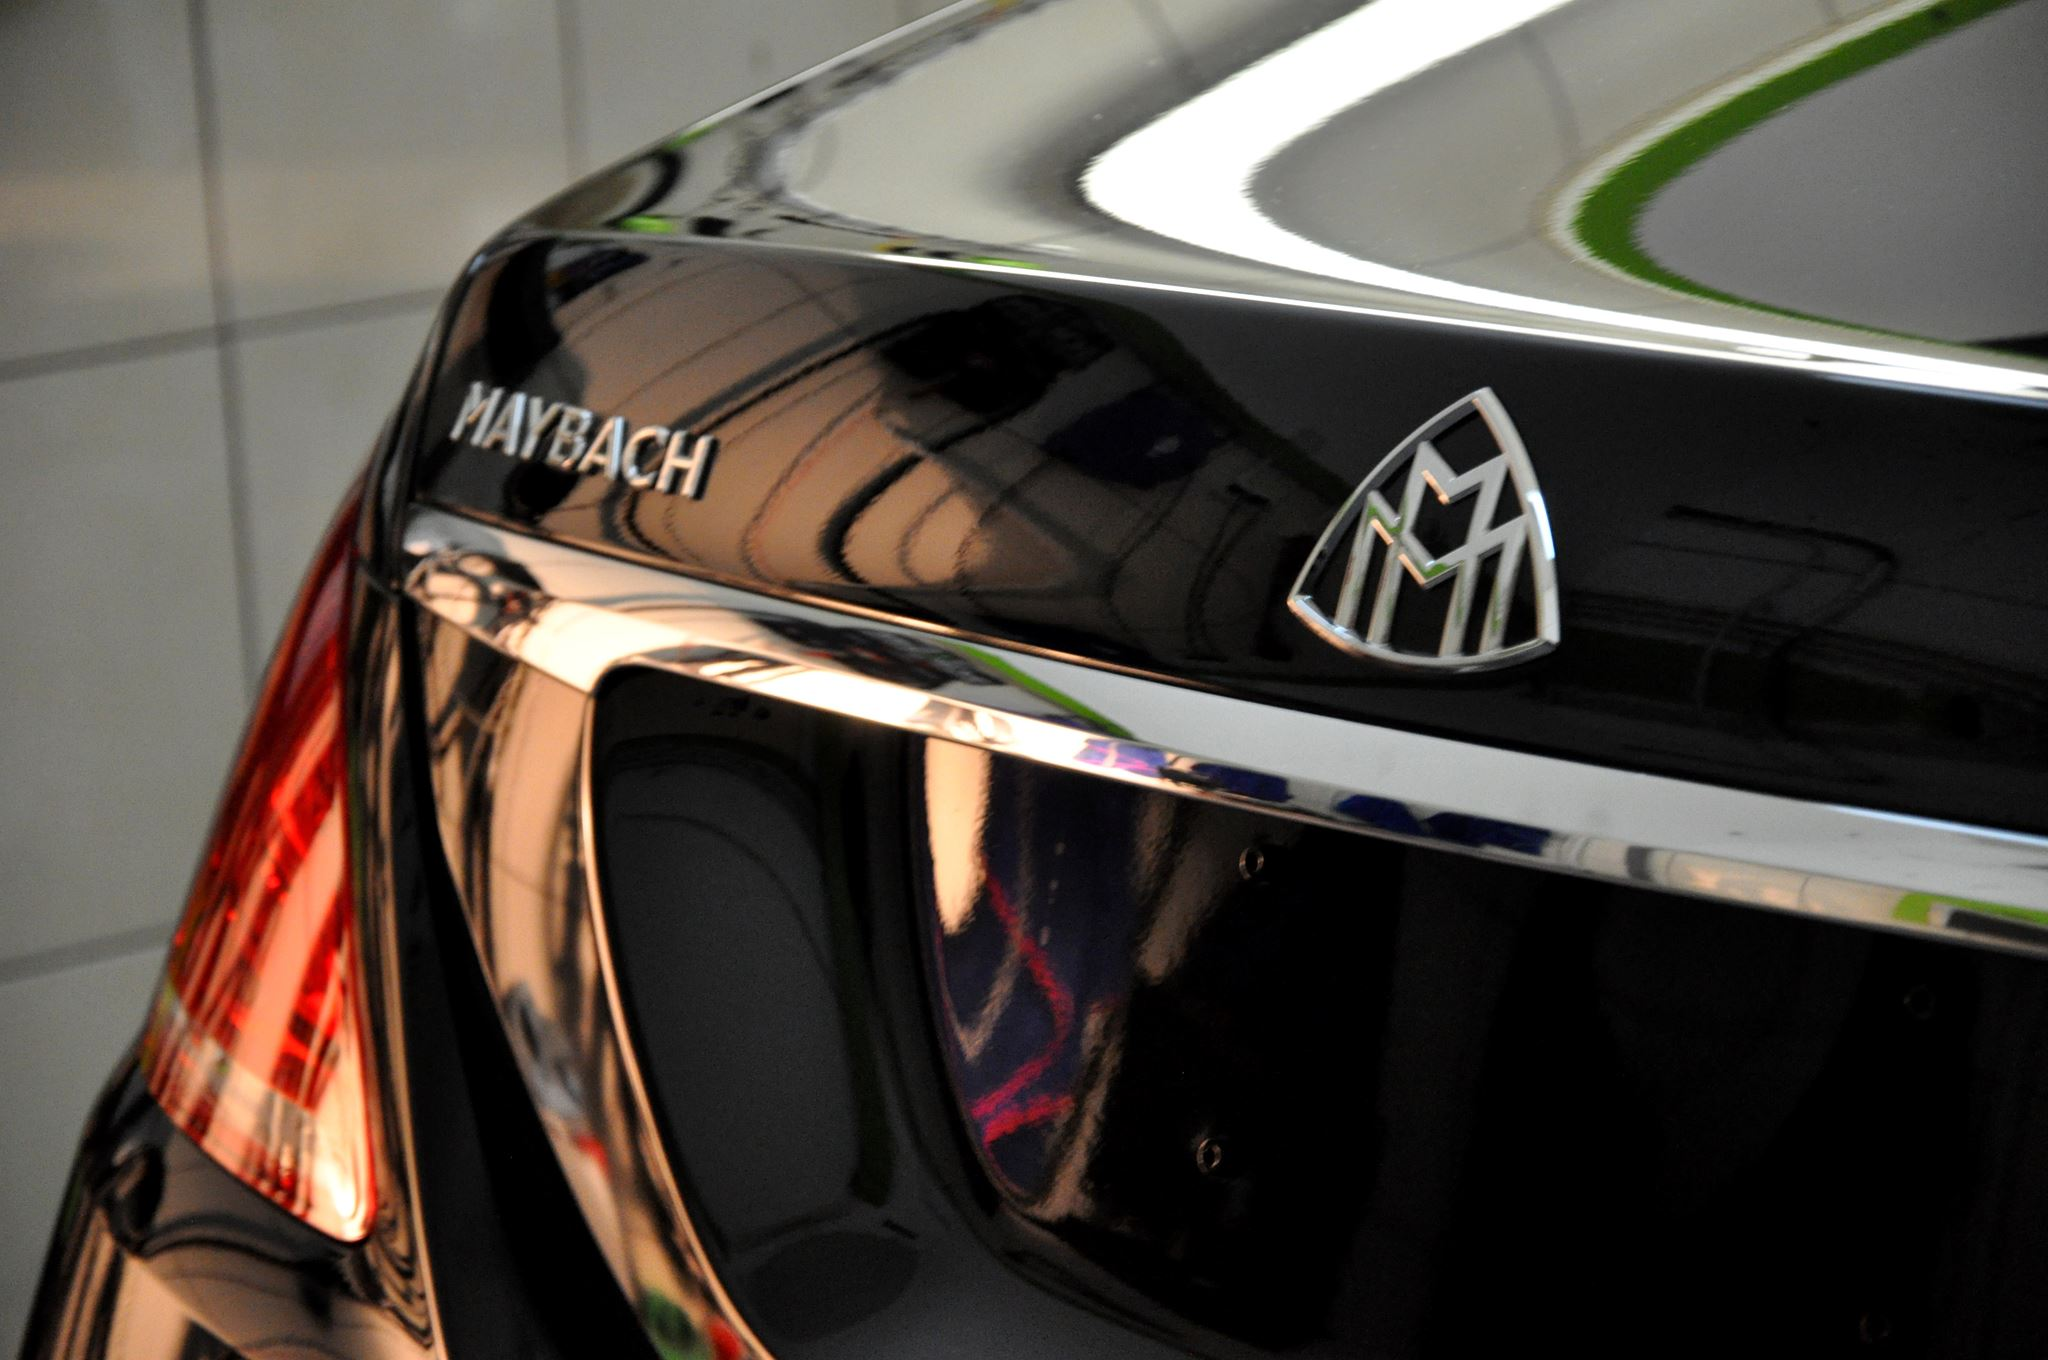 maybach_lodz_showandshine